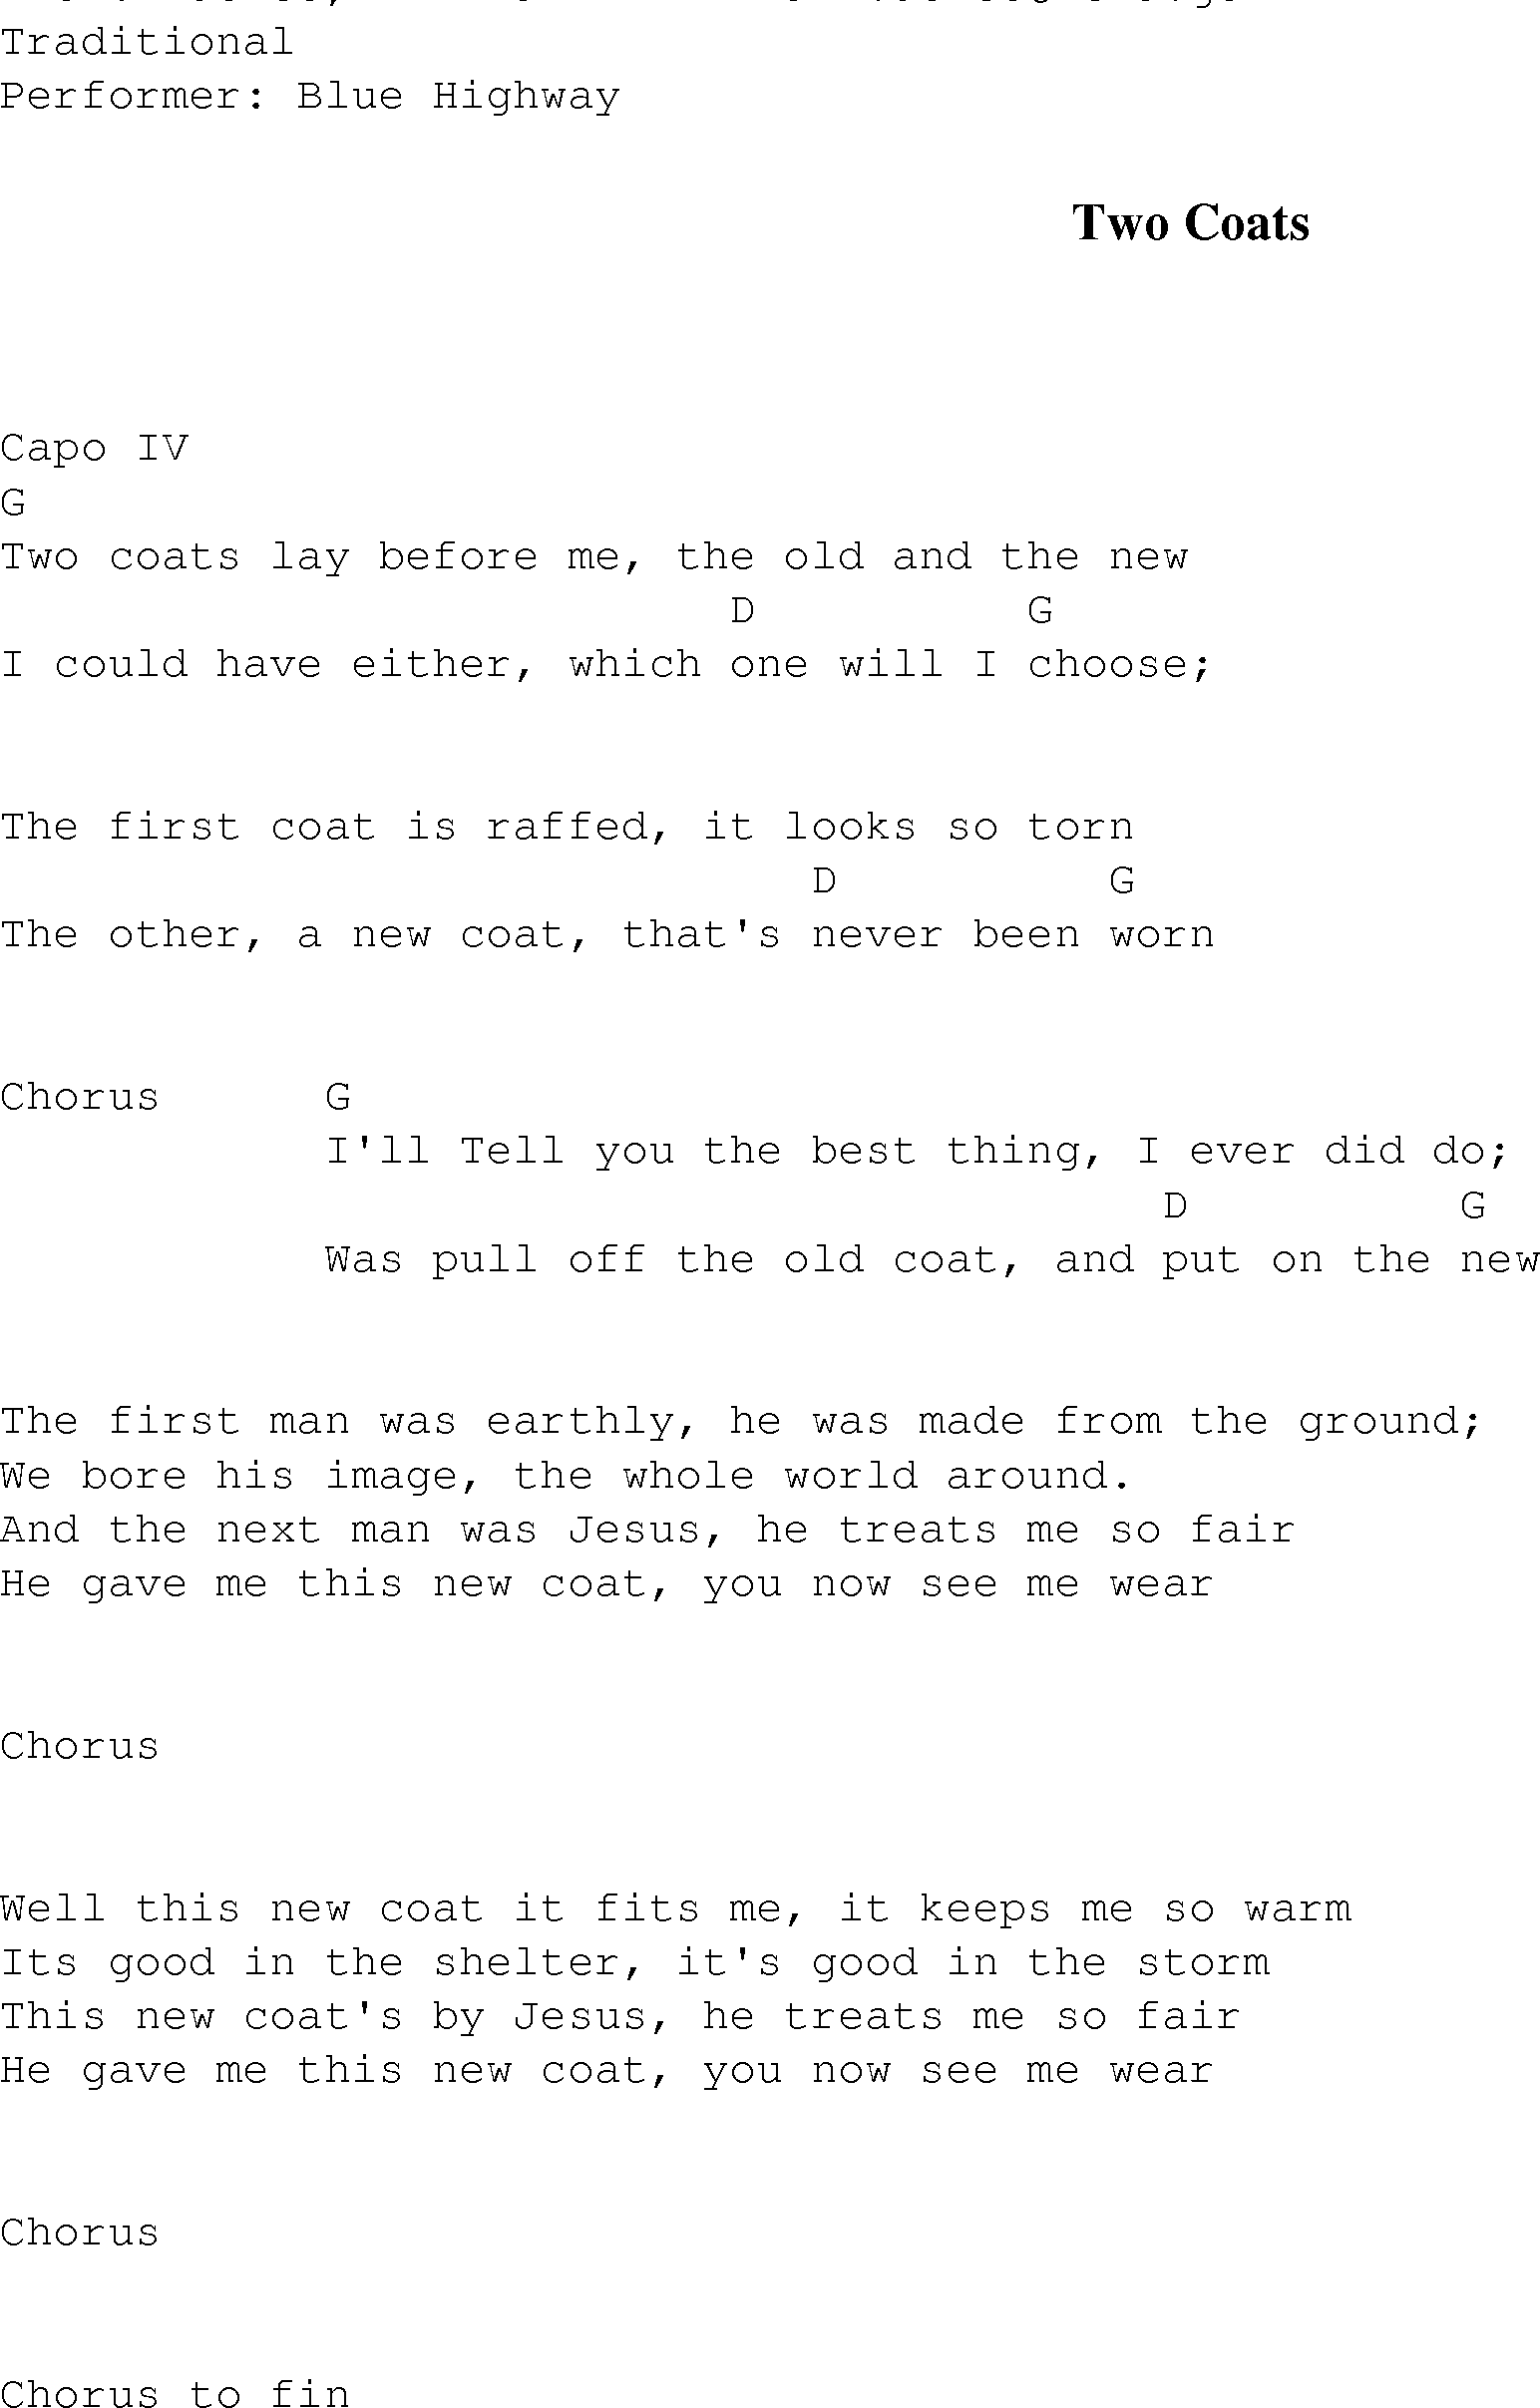 Two coats christian gospel song lyrics and chords gospel song twocoats lyrics and chords hexwebz Image collections